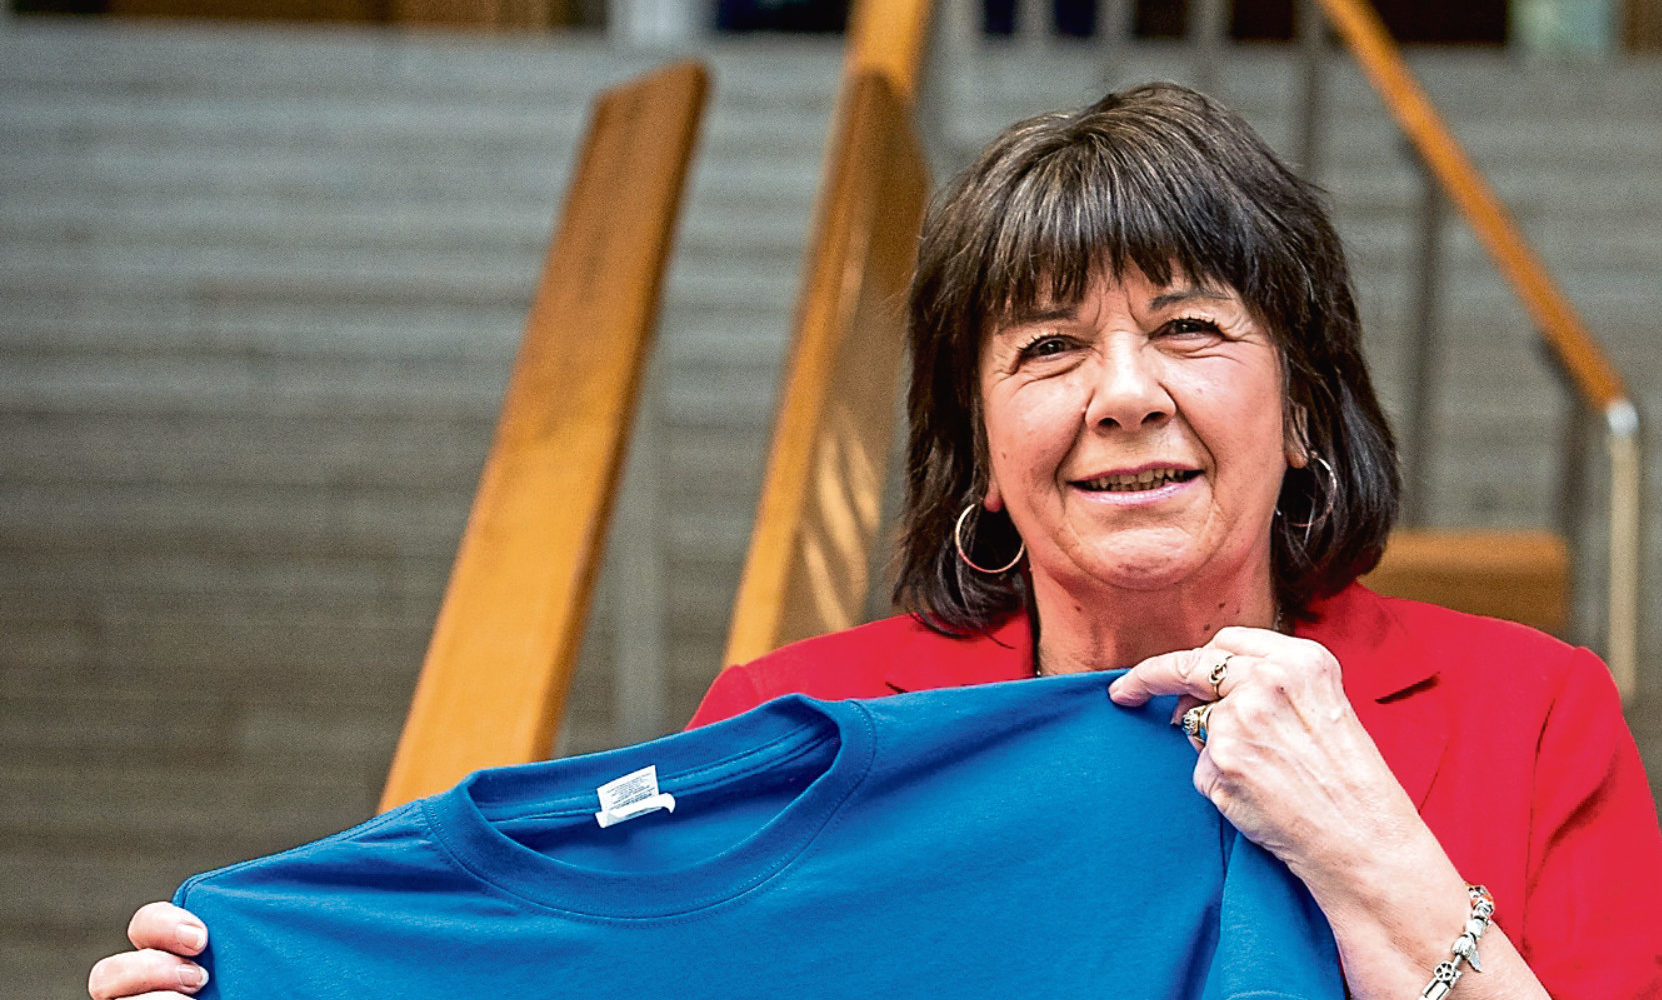 Amanda Kopel successfully campaigned for Frank's Law